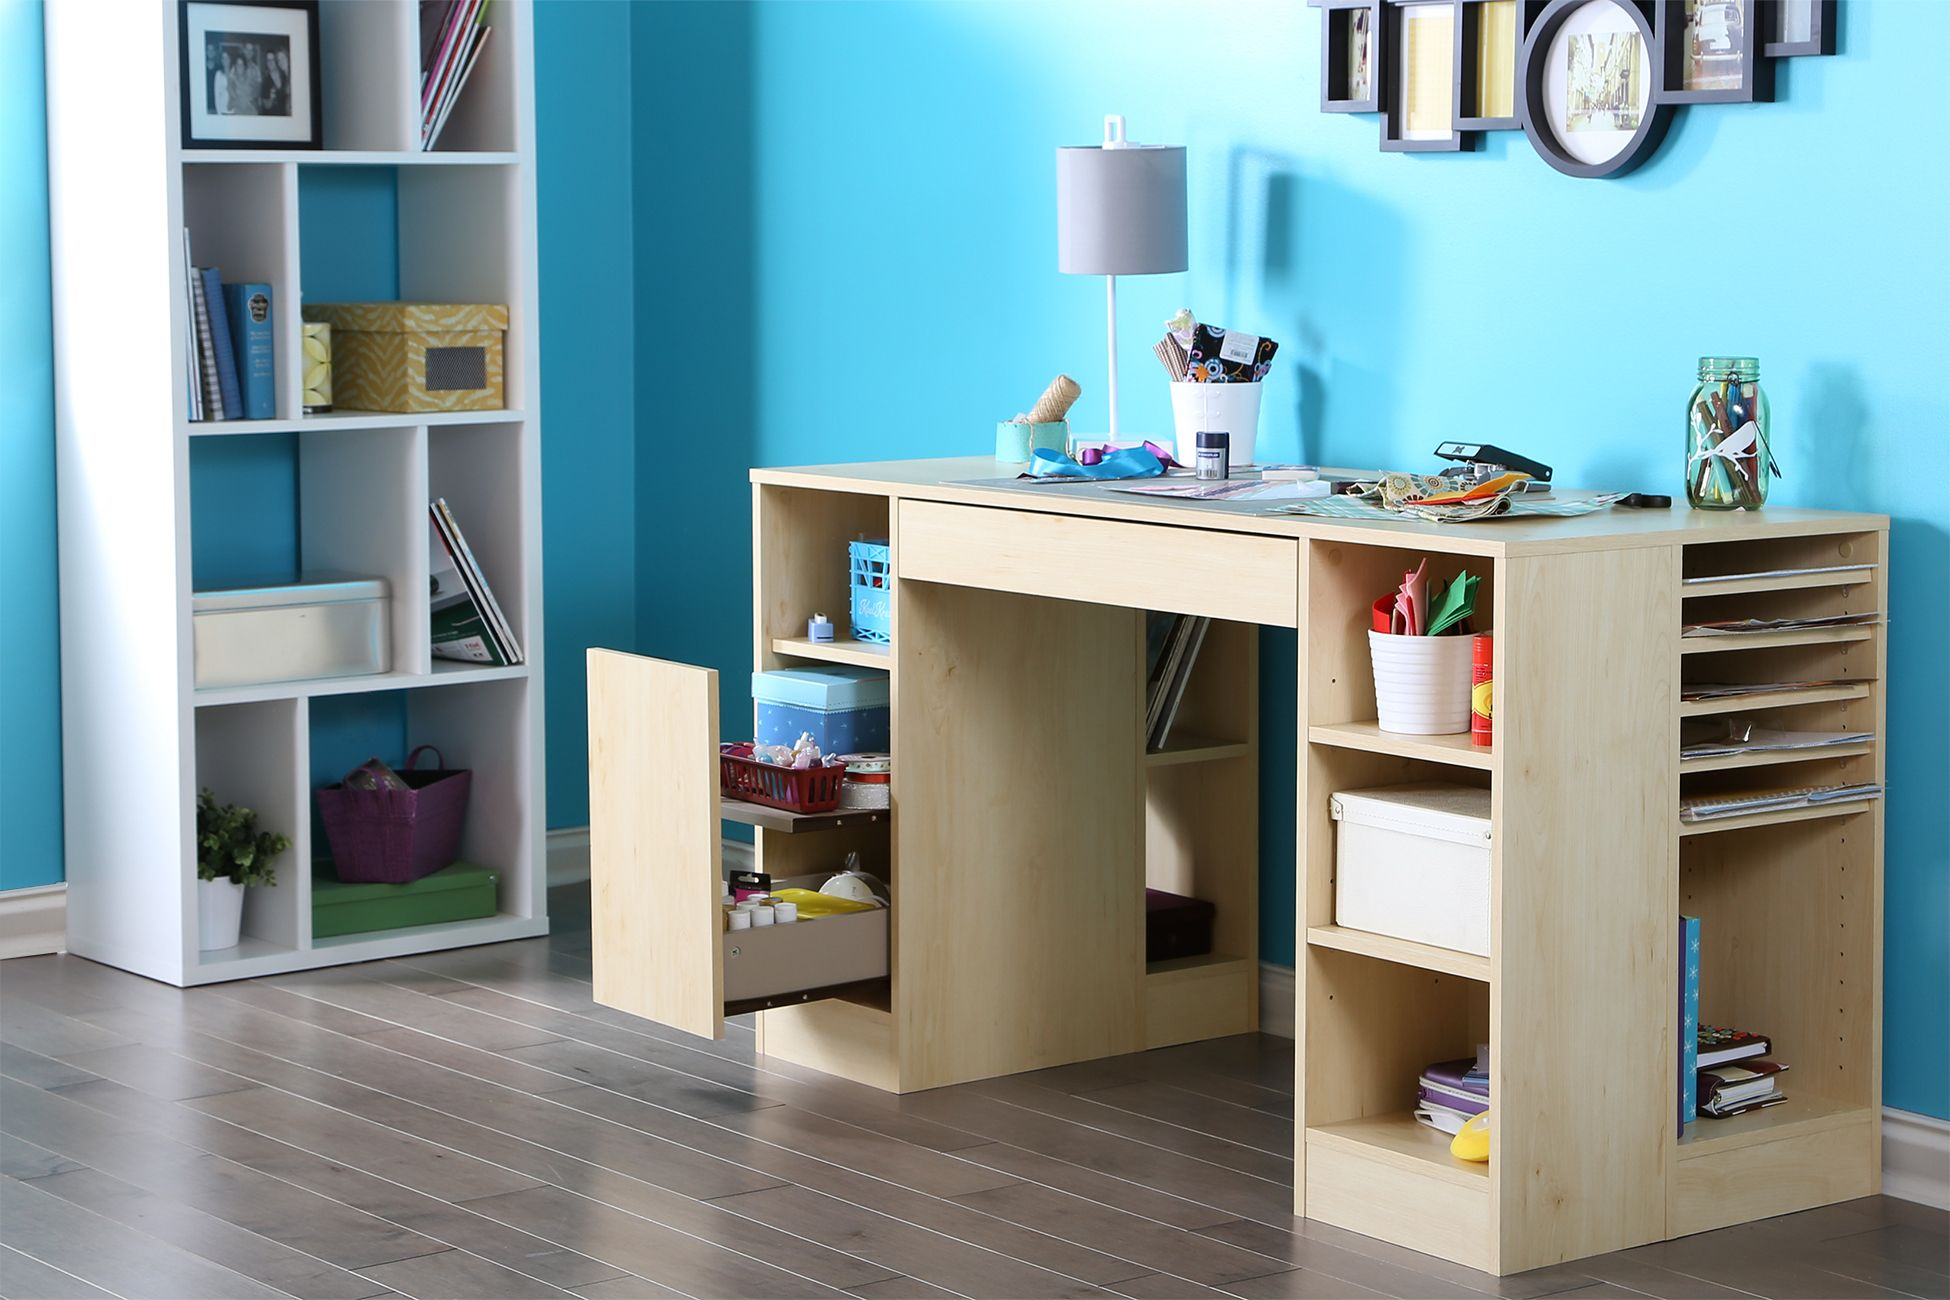 Pin By Dana Dezine On Kidsroom Craft Table Craft Tables With Storage Sewing Table